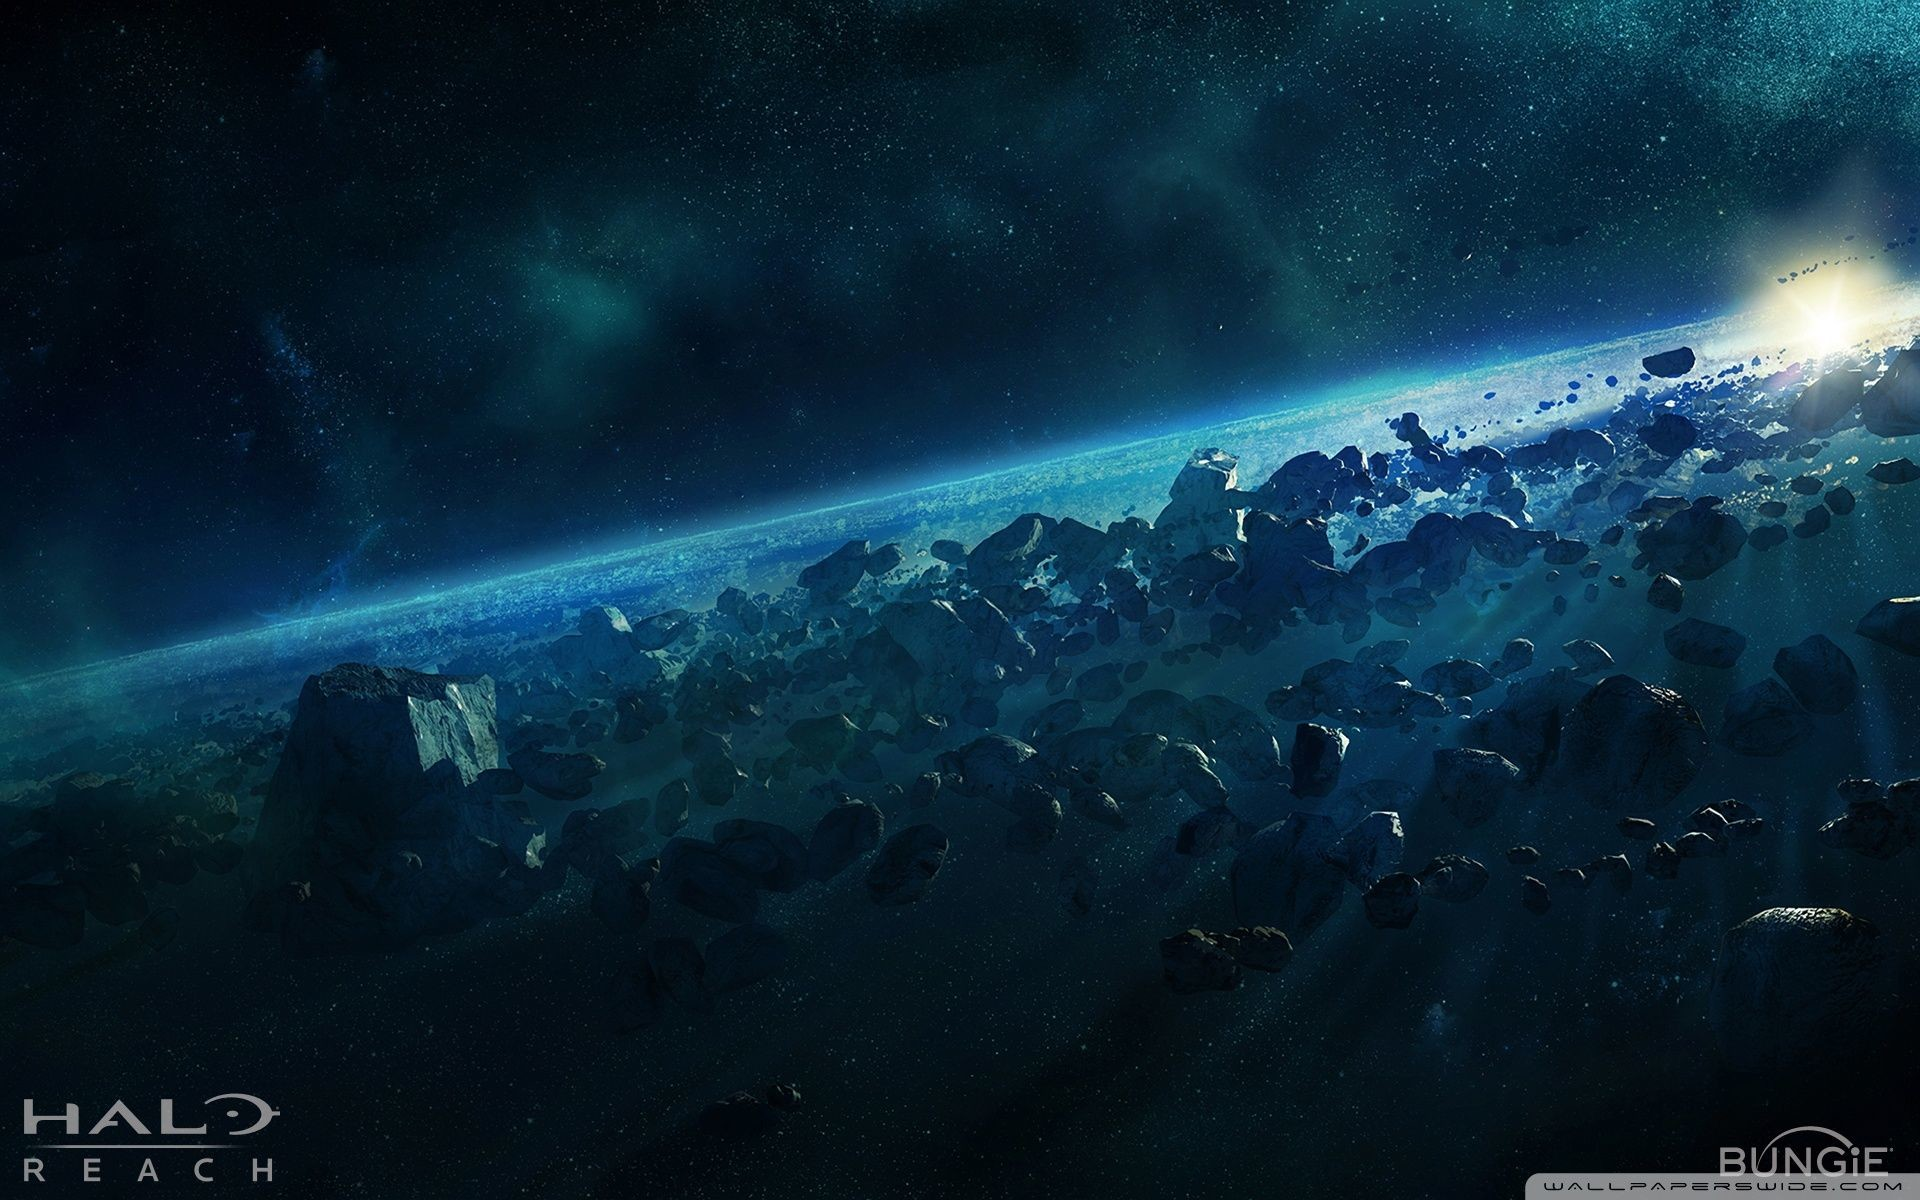 Halo Reach Wallpapers 1080p – Wallpaper Cave